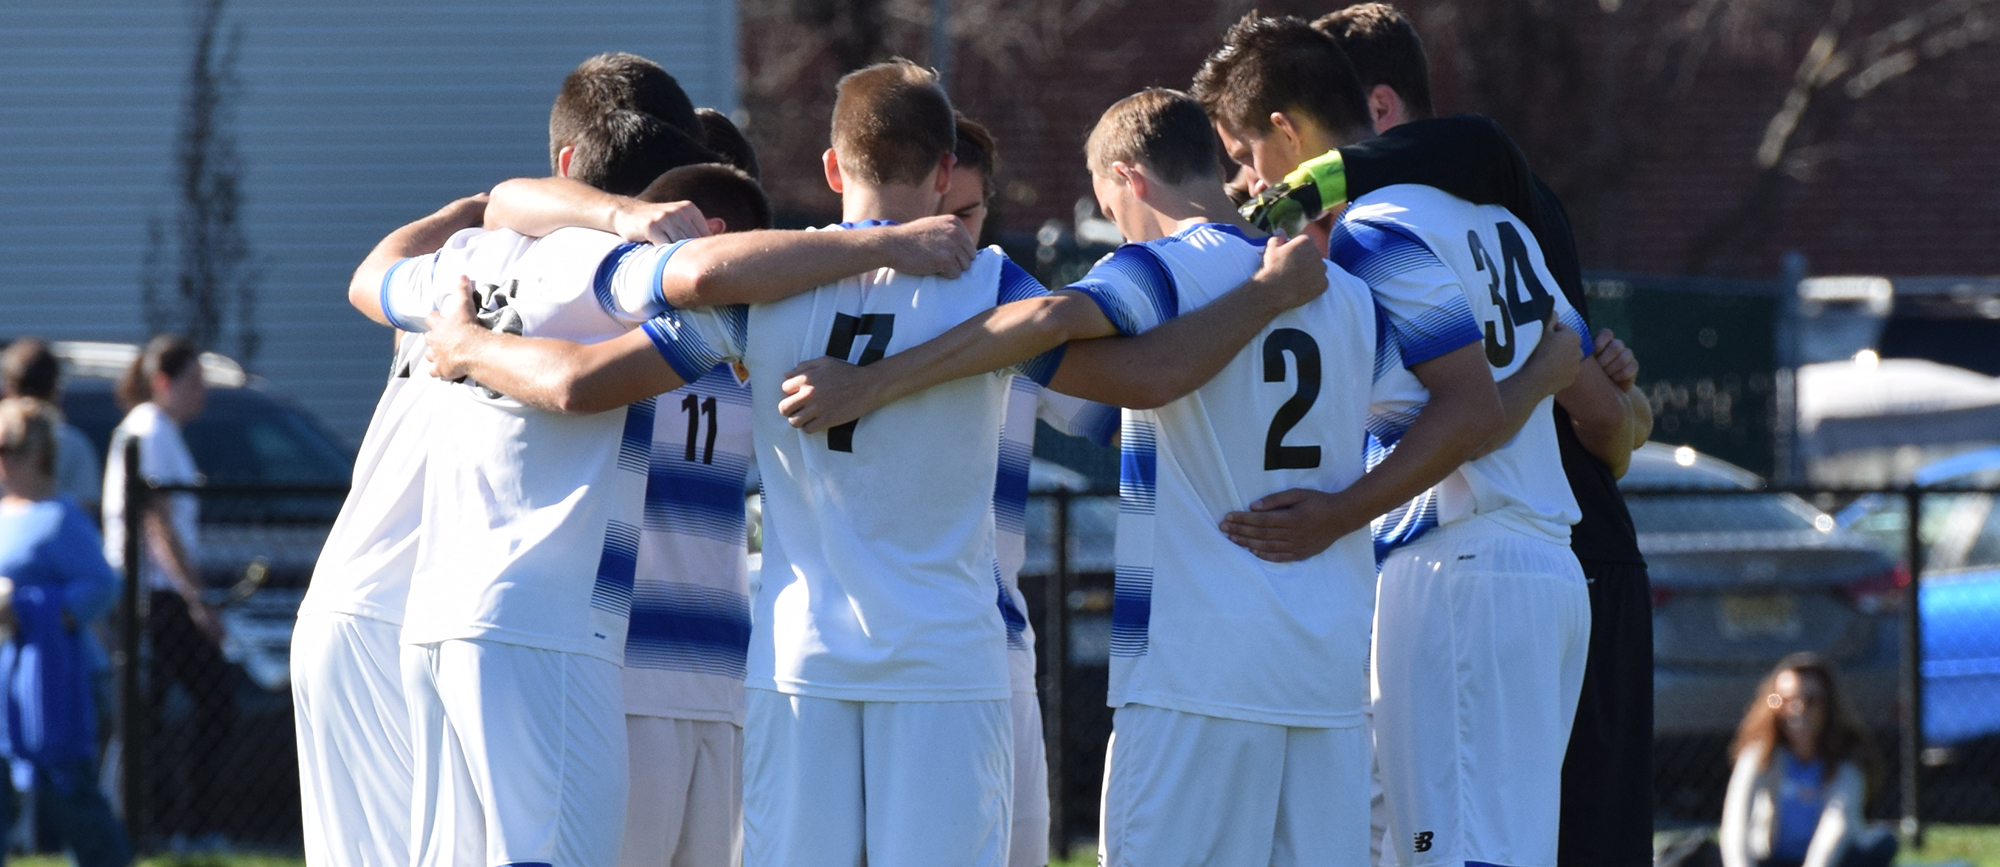 Gordon Edges Western New England in CCC Semifinals, 1-0